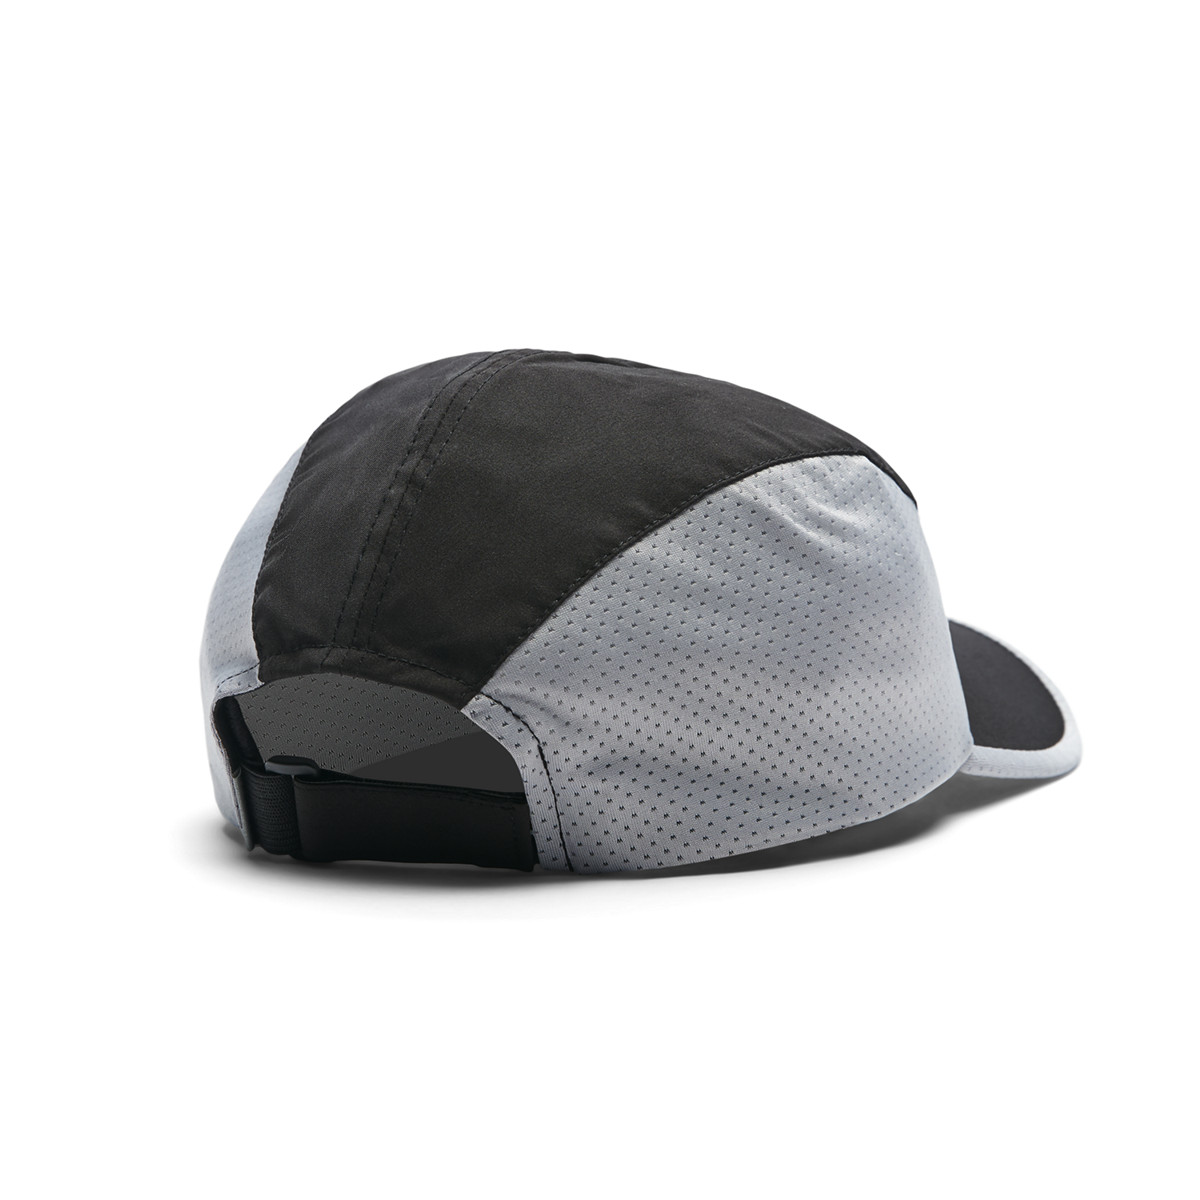 Danner Run Cap - Black/Gray